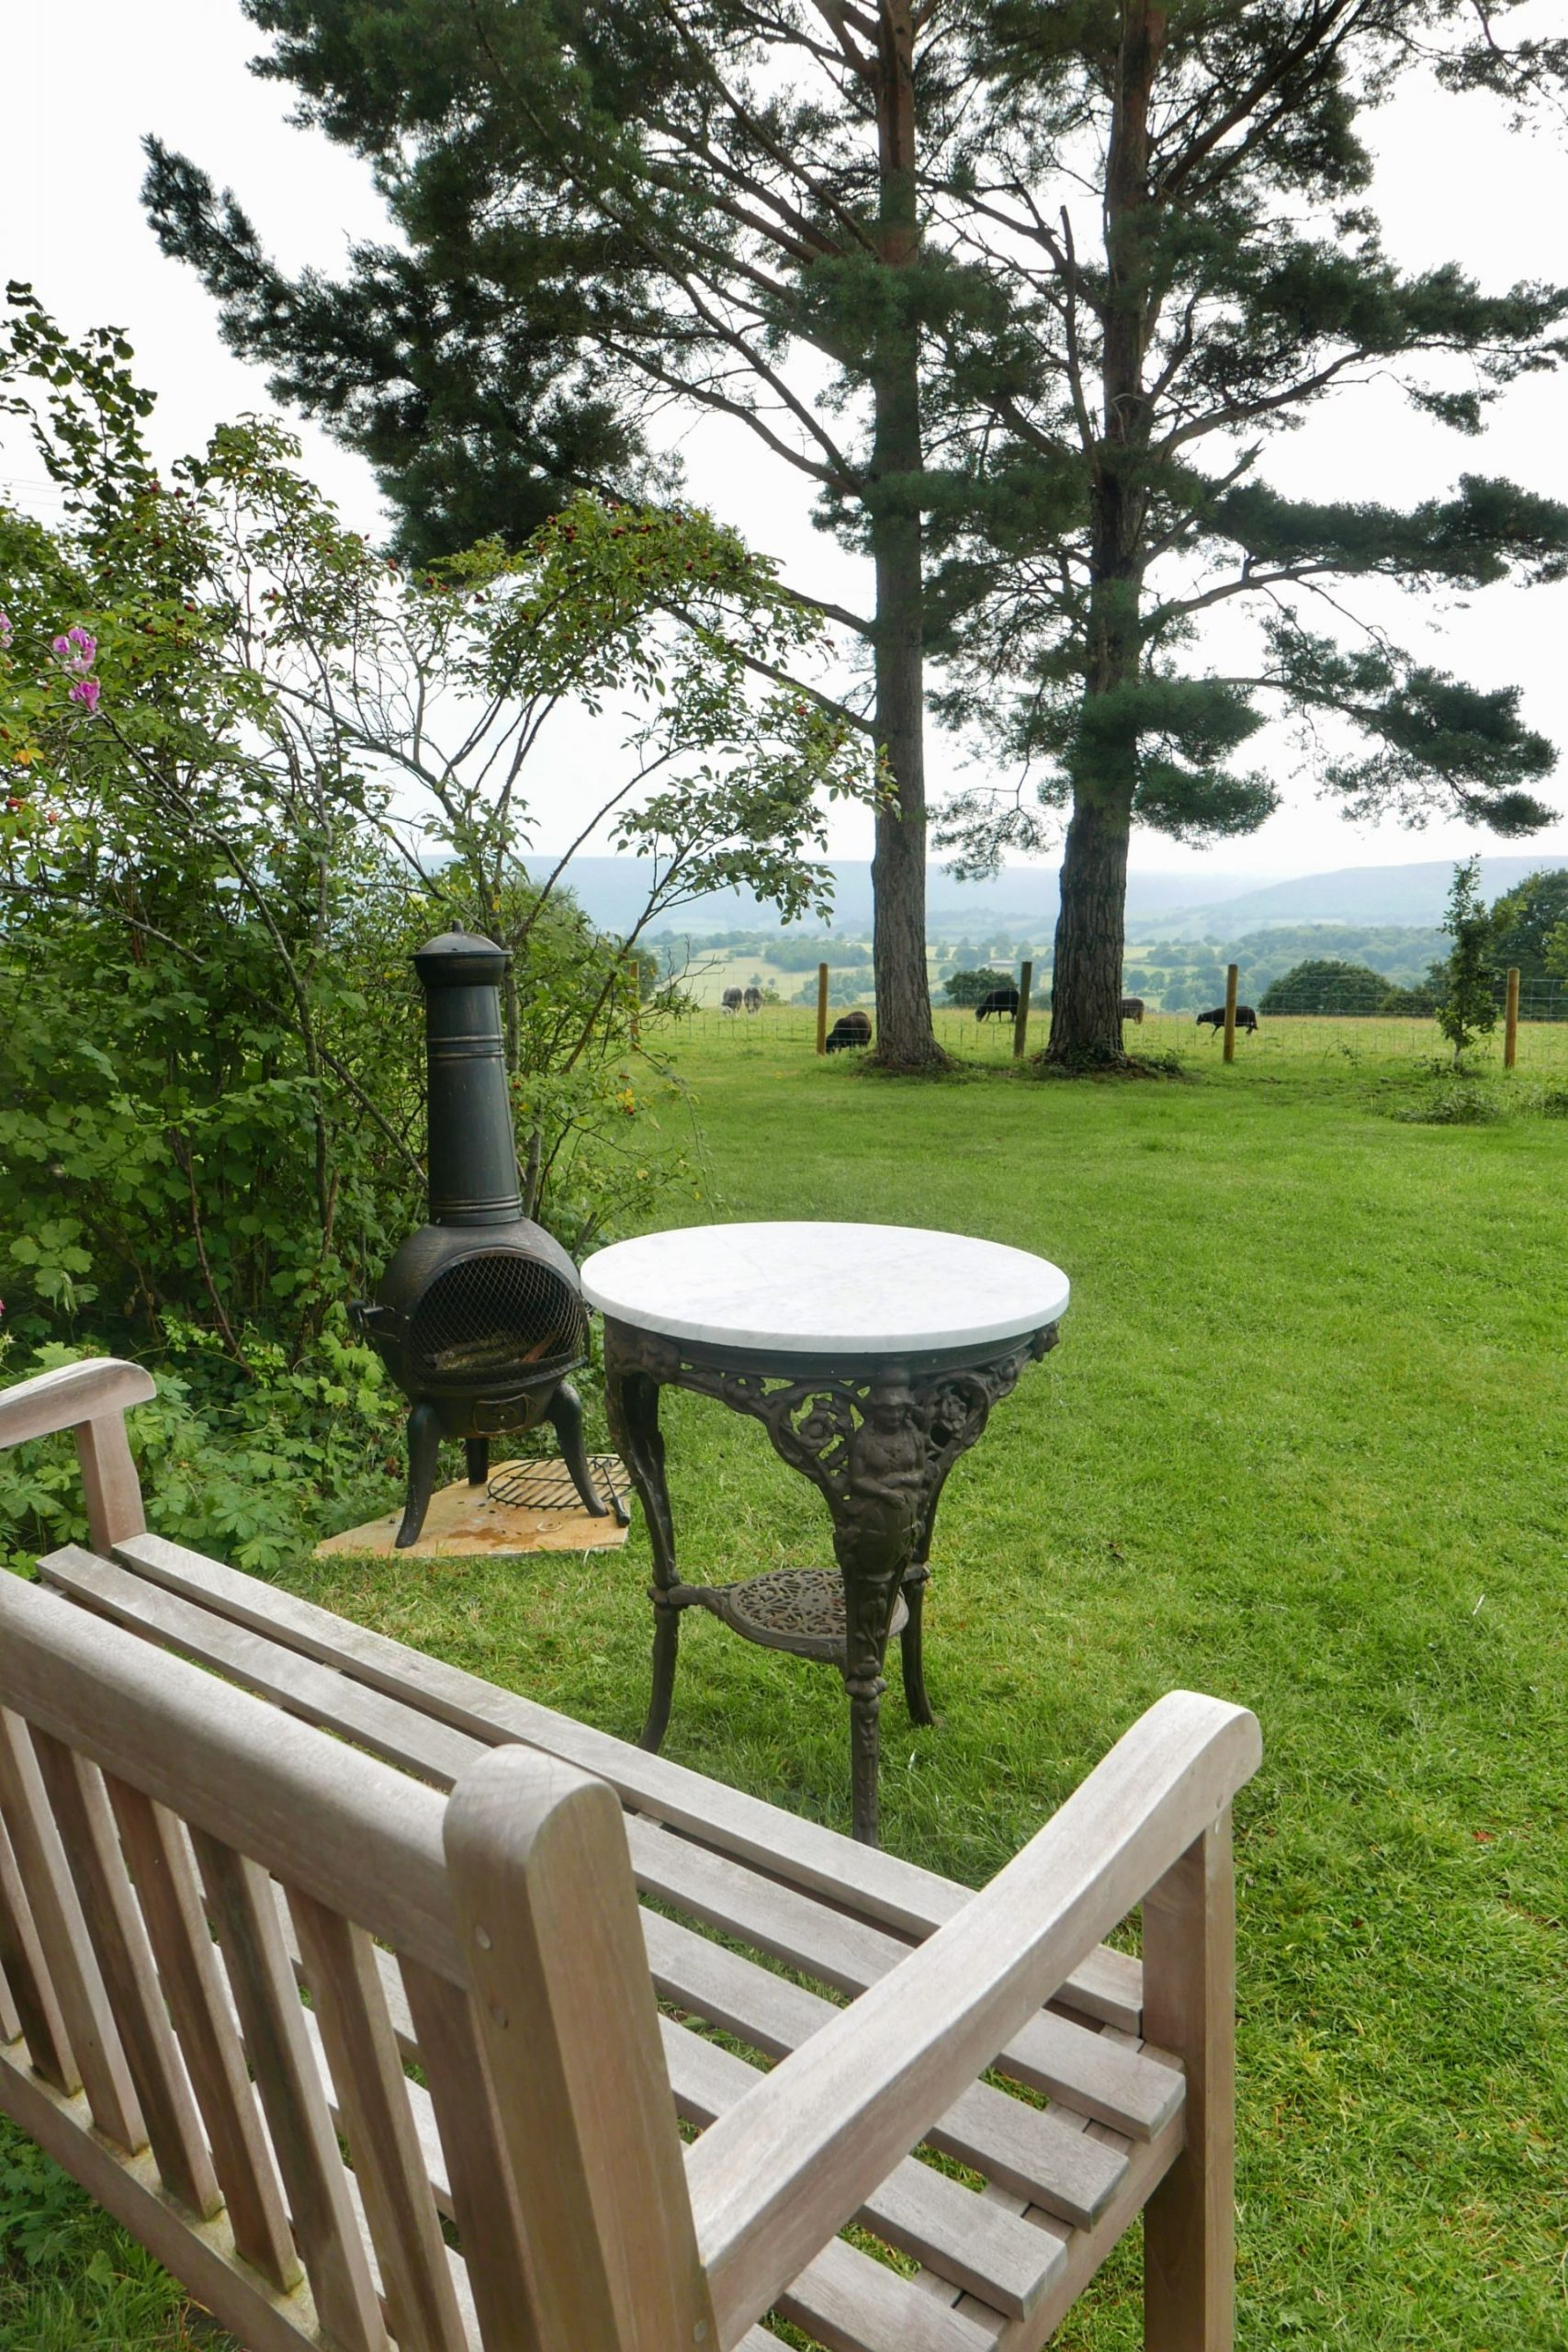 Bench, table and chimenea, overlooking trees and sheeps